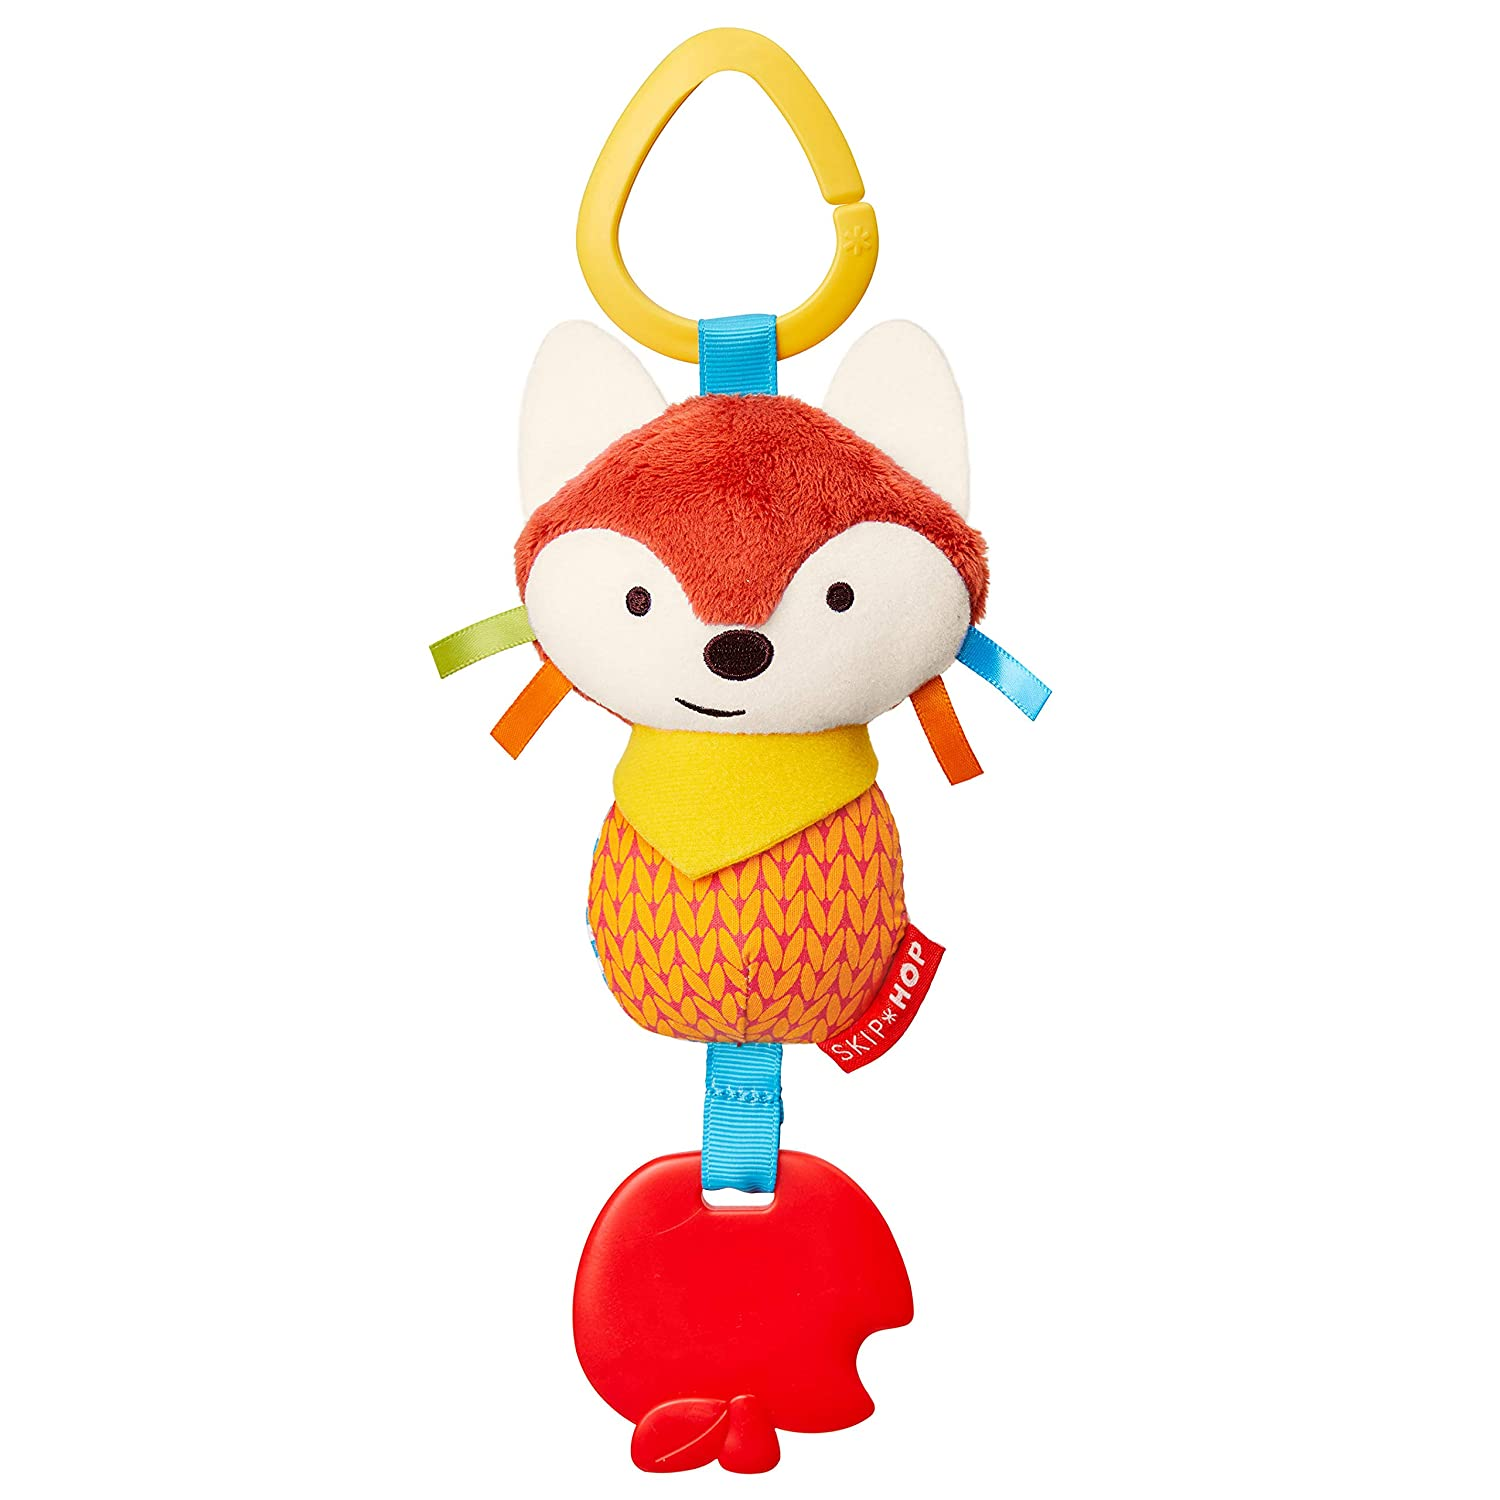 Skip Hop Bandana Buddies Baby Activity Chime & Teether Stroller Toy, Fox